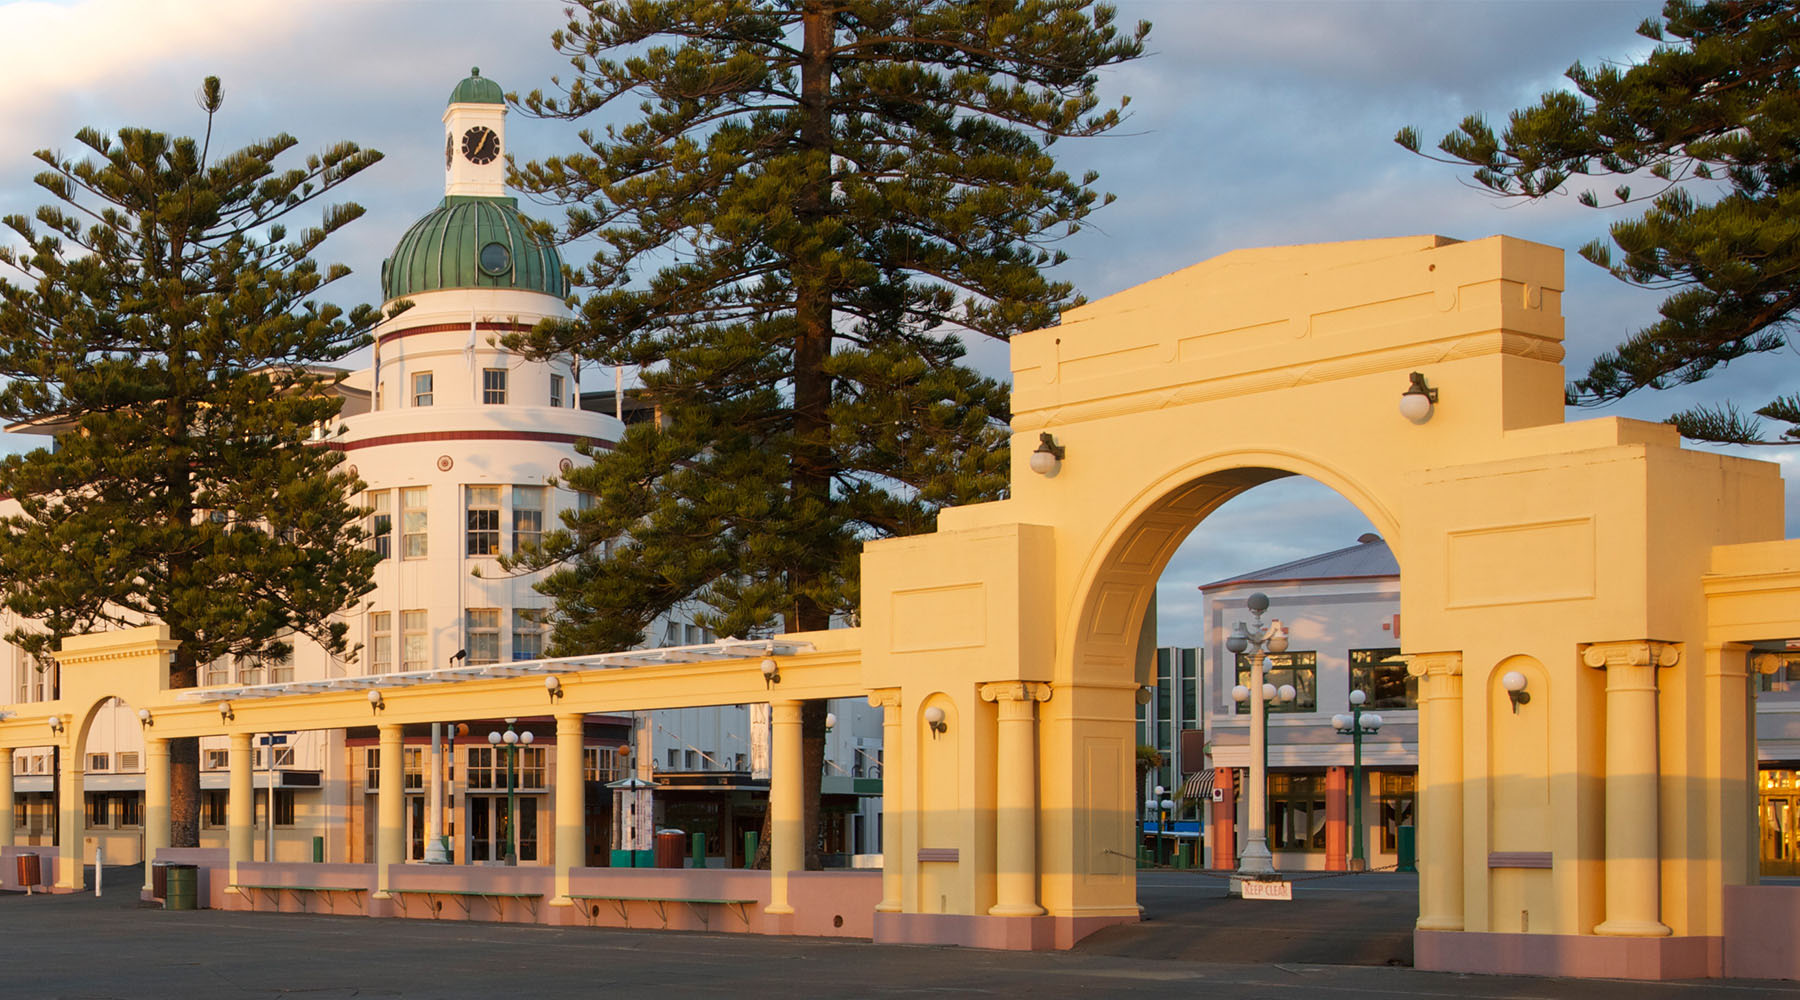 Explore the art deco architecture in Napier, New Zealand